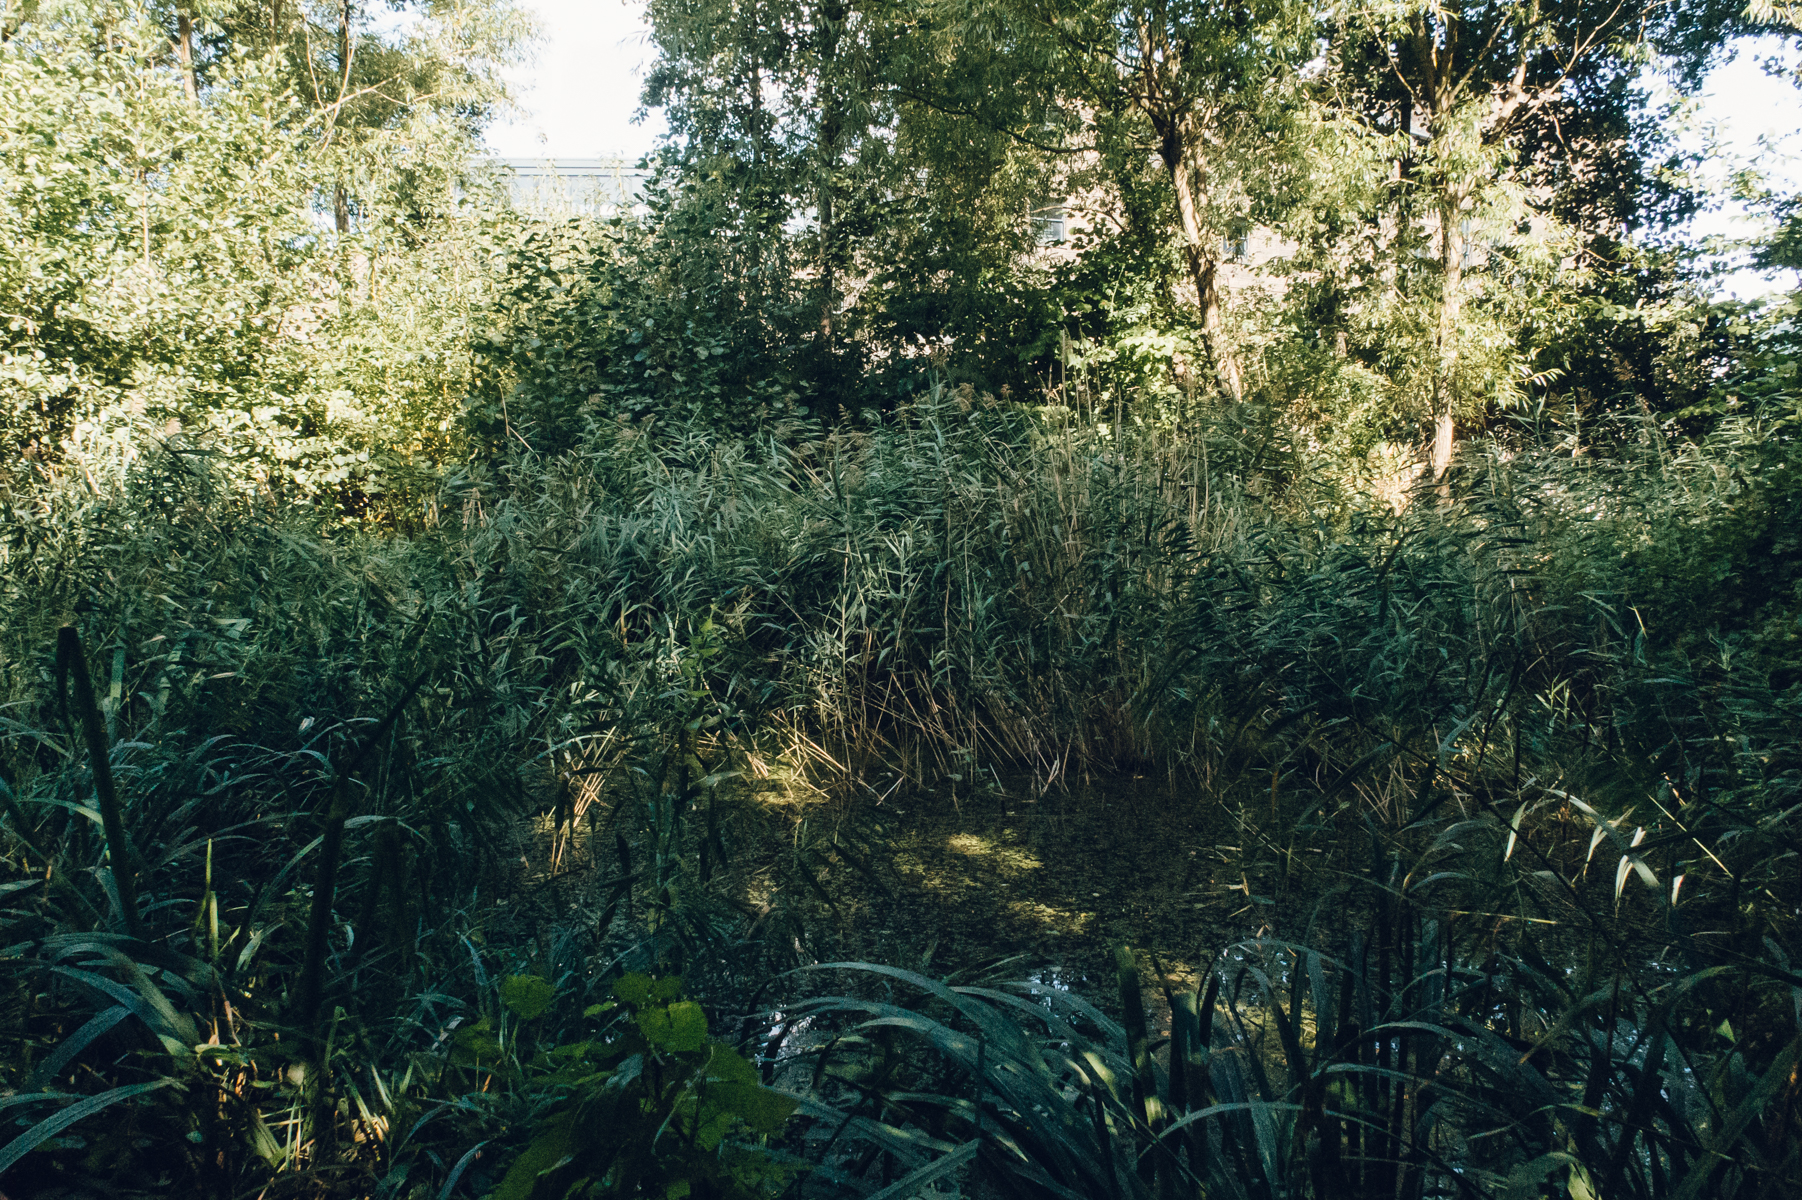 A leafy wild and overgrown garden in central London